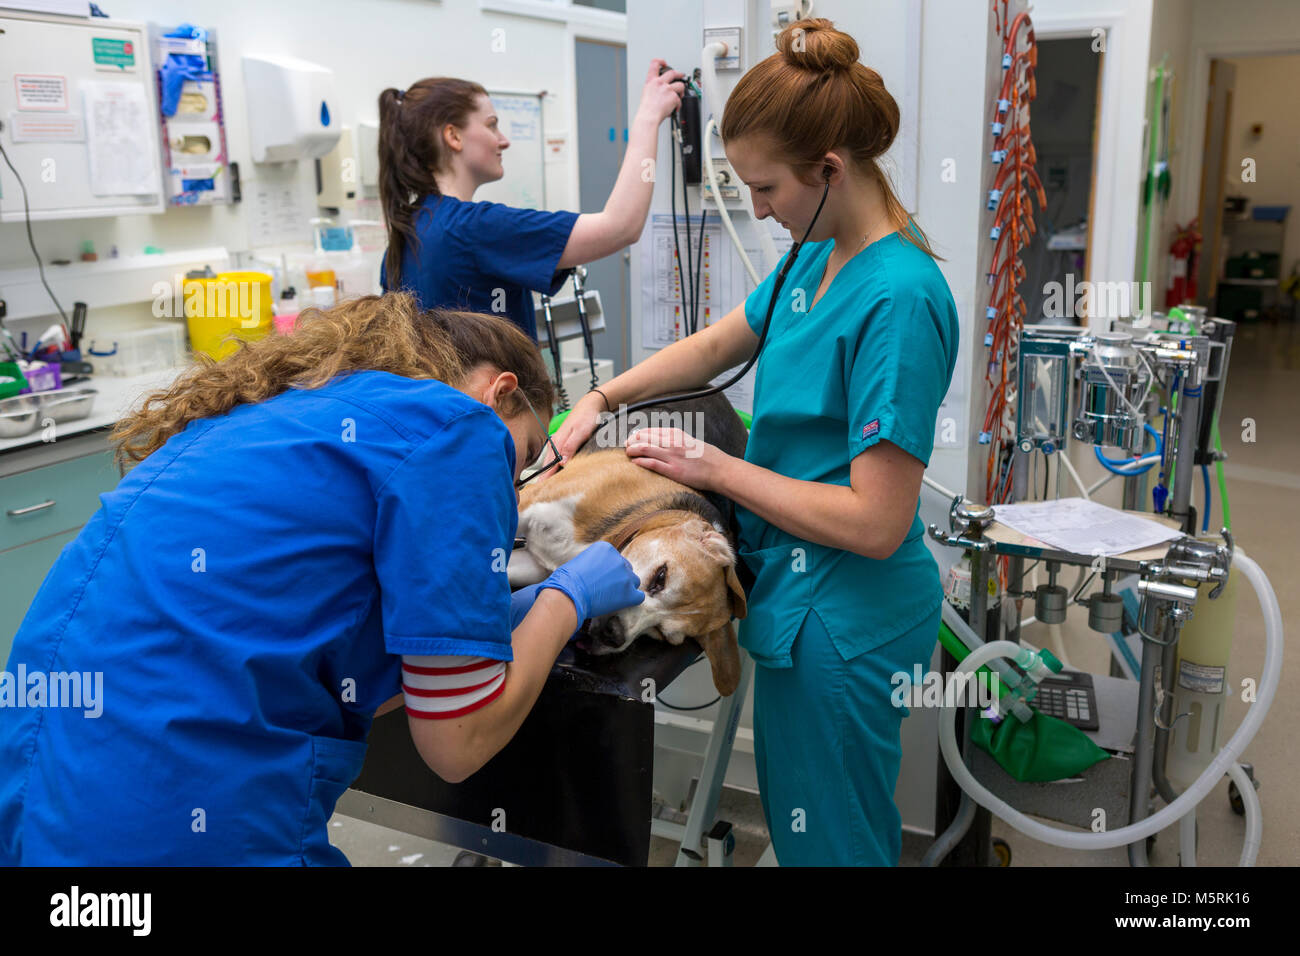 A dog is prepared for surgery by a veterinary surgeon and nurses - Stock Image